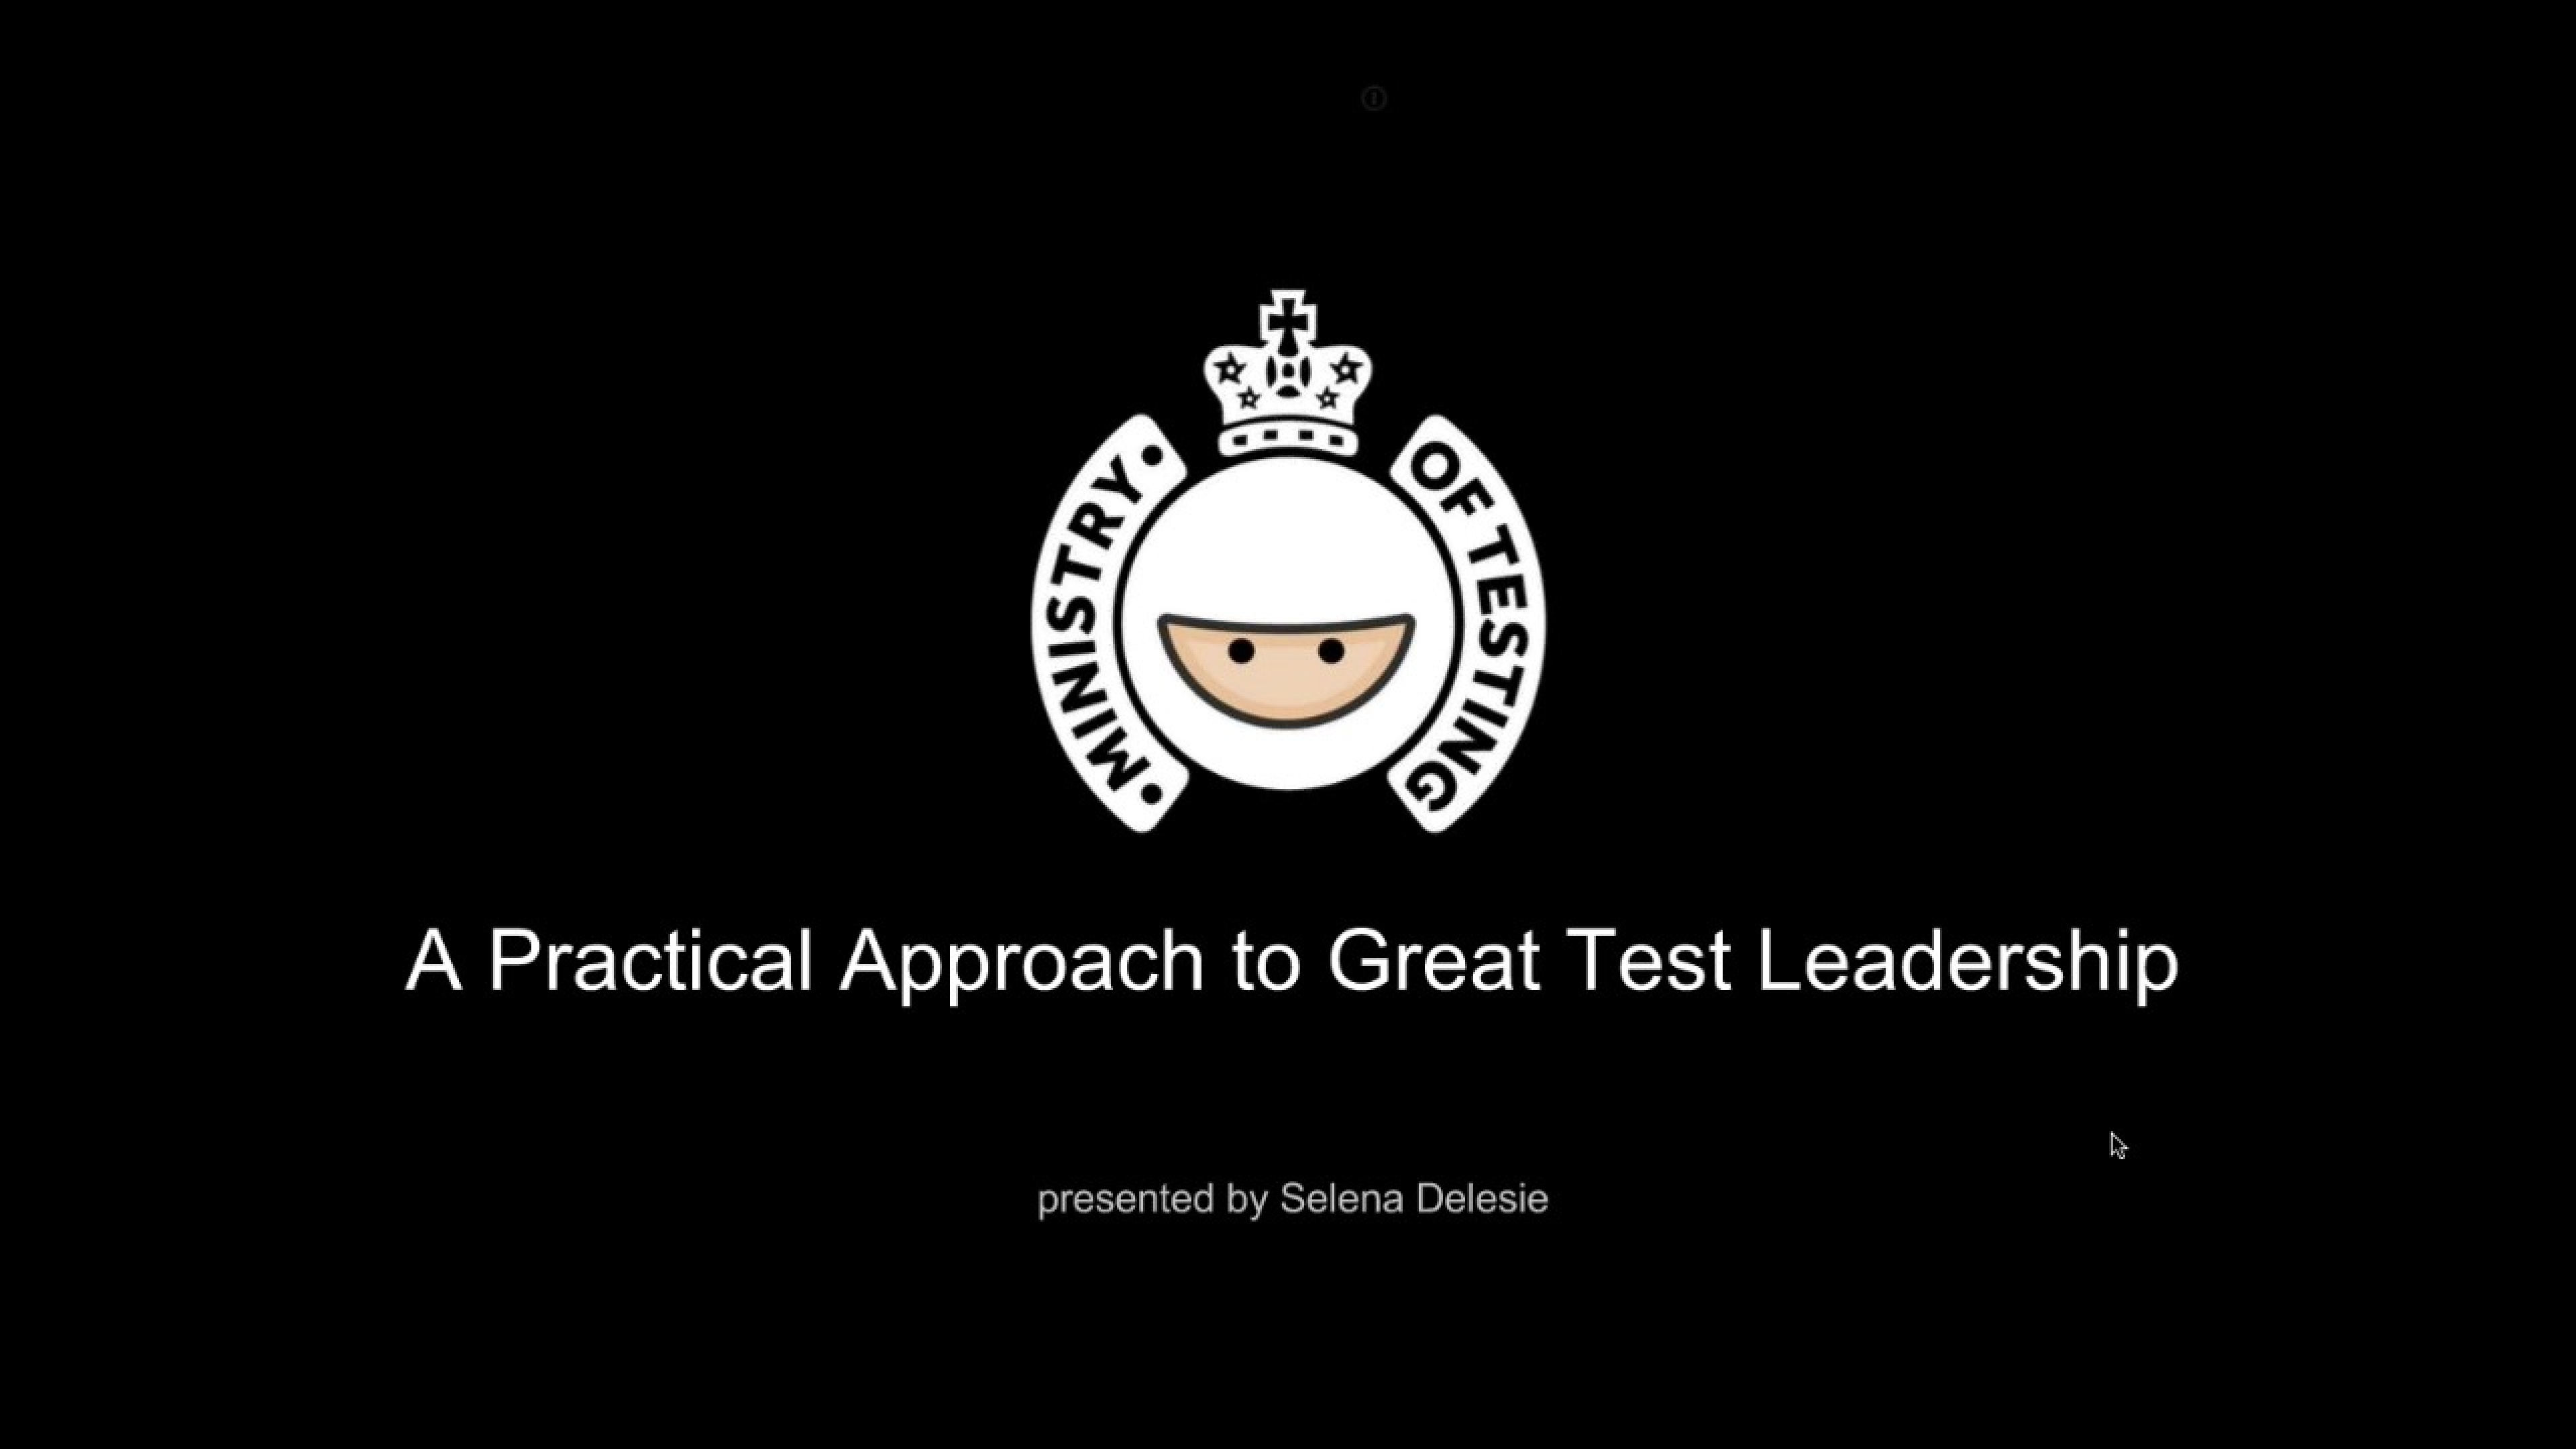 A Practical Approach To Great Test Leadership with Selena Delesie